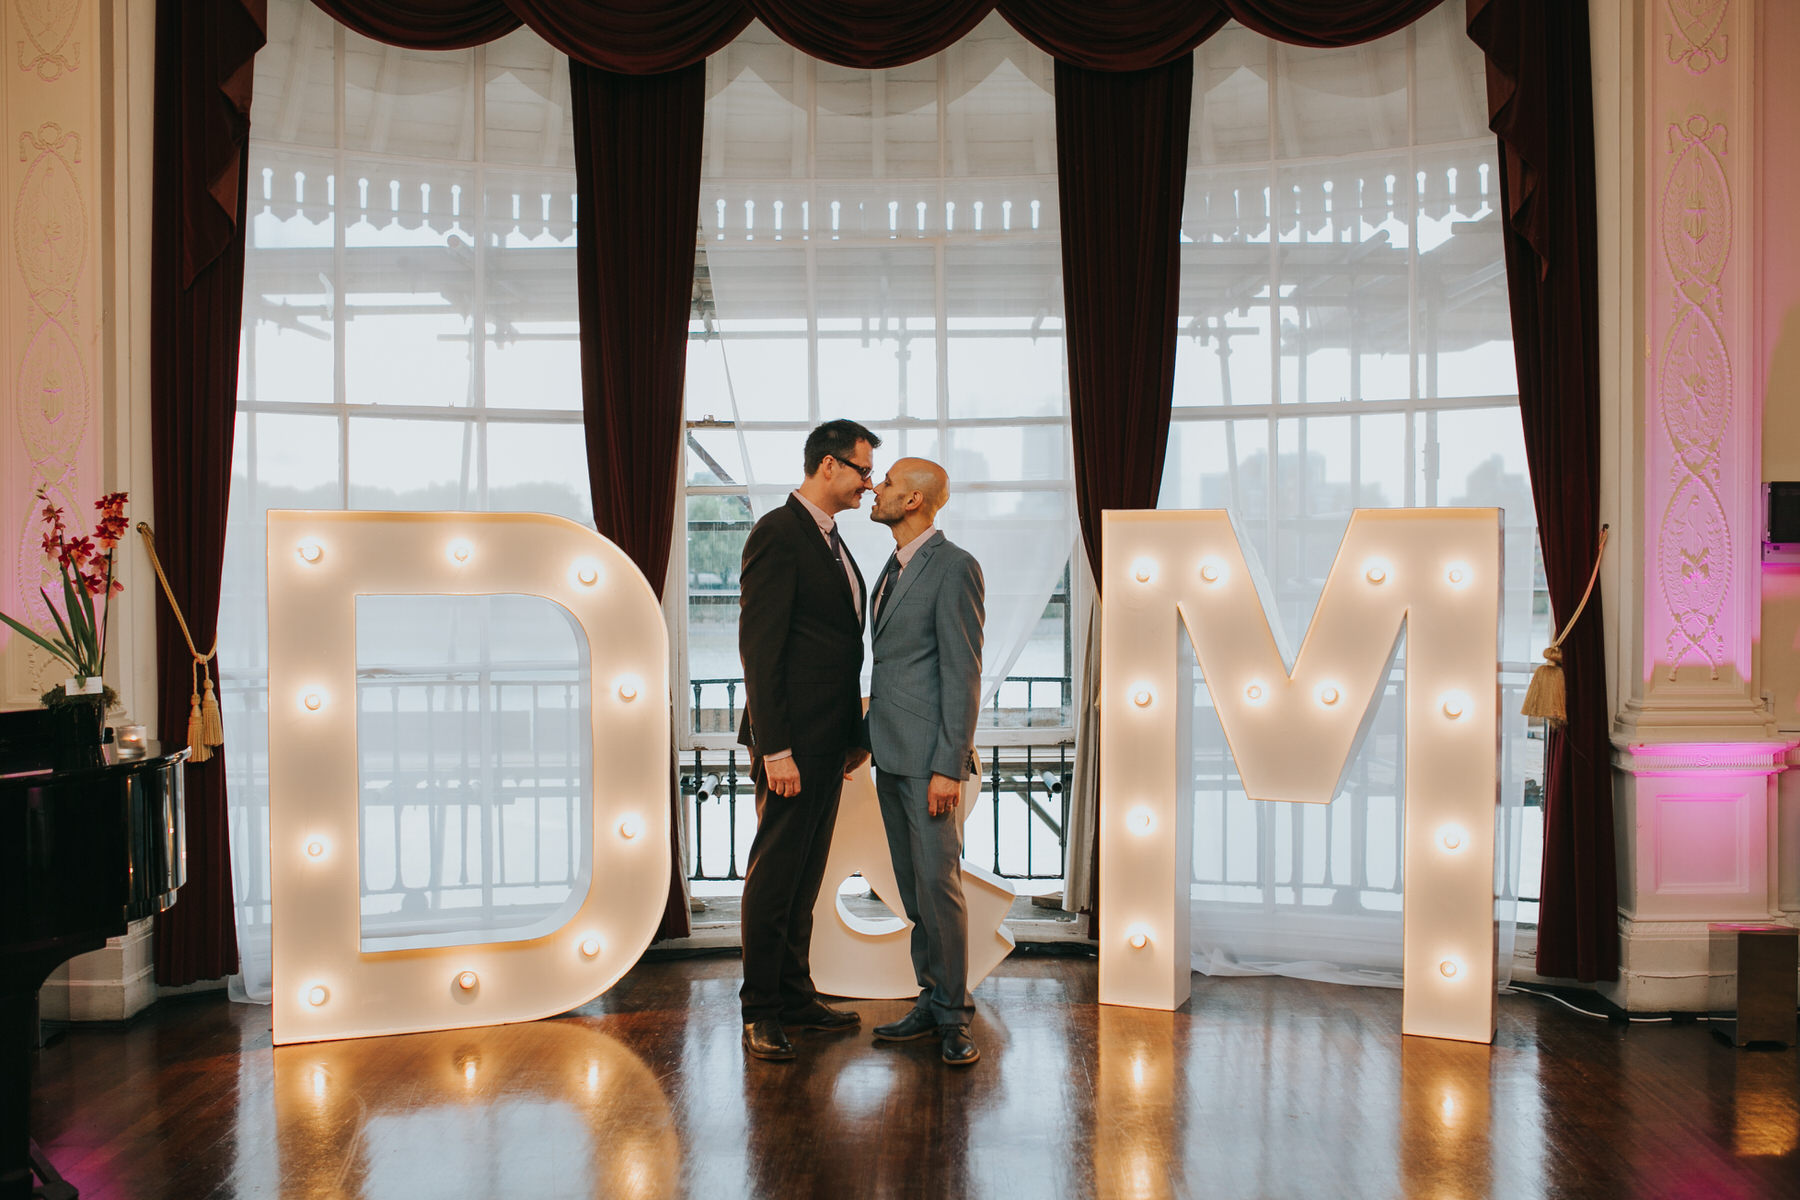 189 two grooms light up letters wedding portraits London.jpg